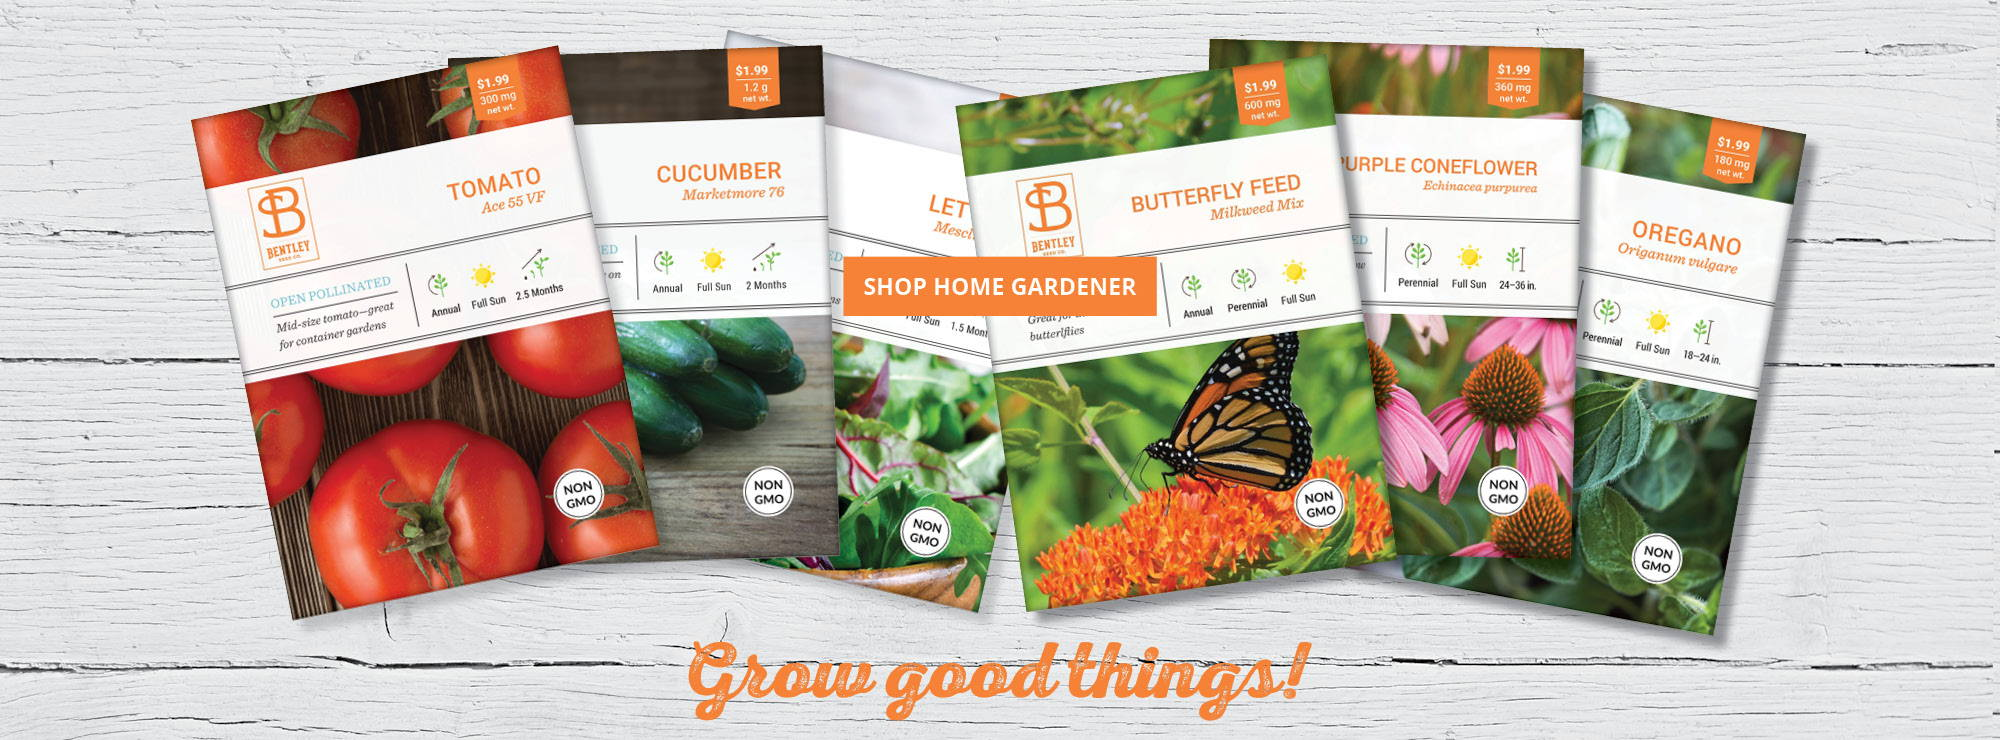 Whether you are a home gardener, or need favors for a special occasion, we have the seeds you need to grow good things!